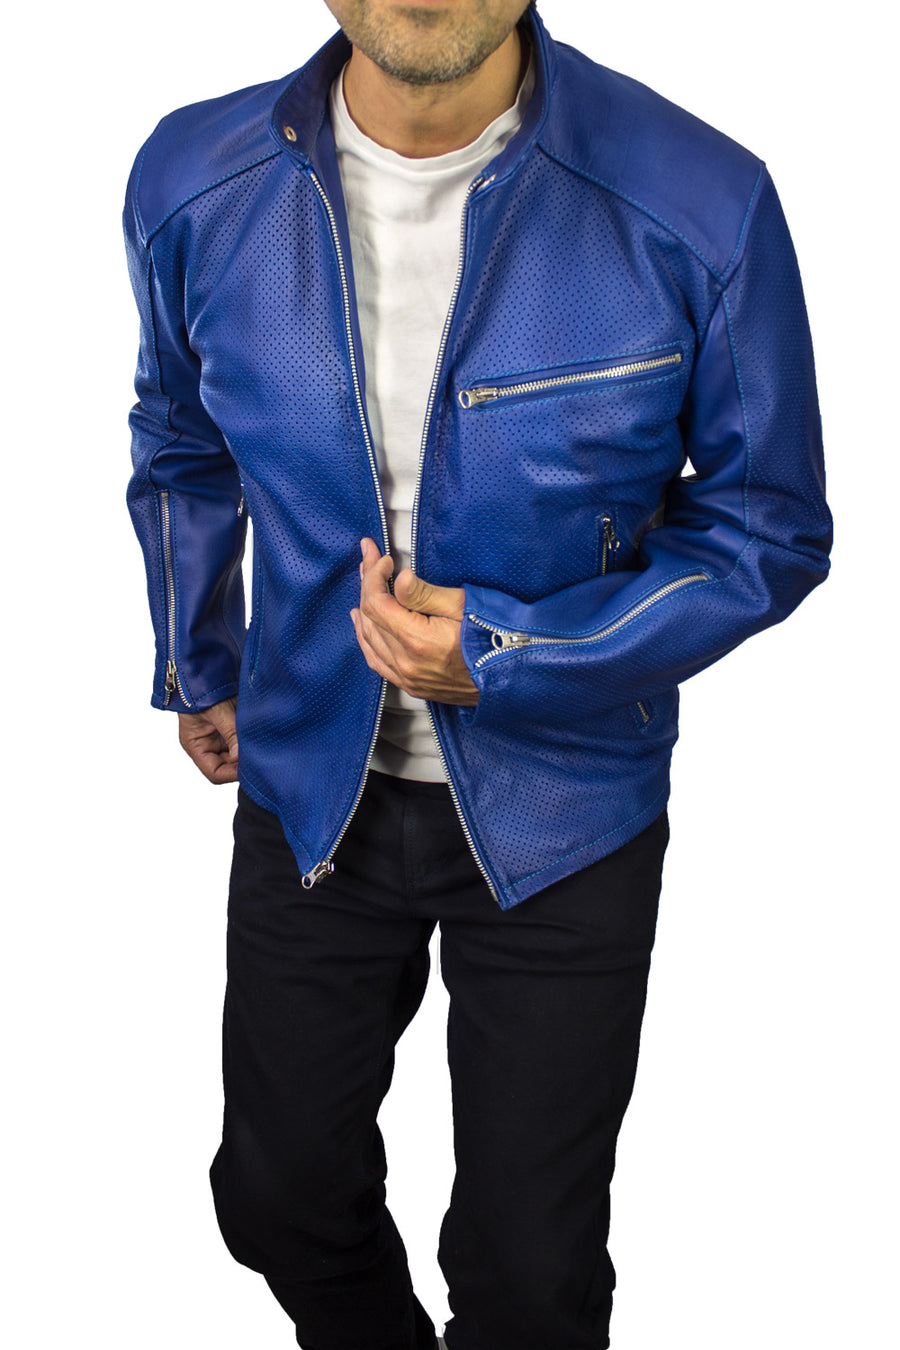 MOTOP Leather Jacket  - Blue Perforated -